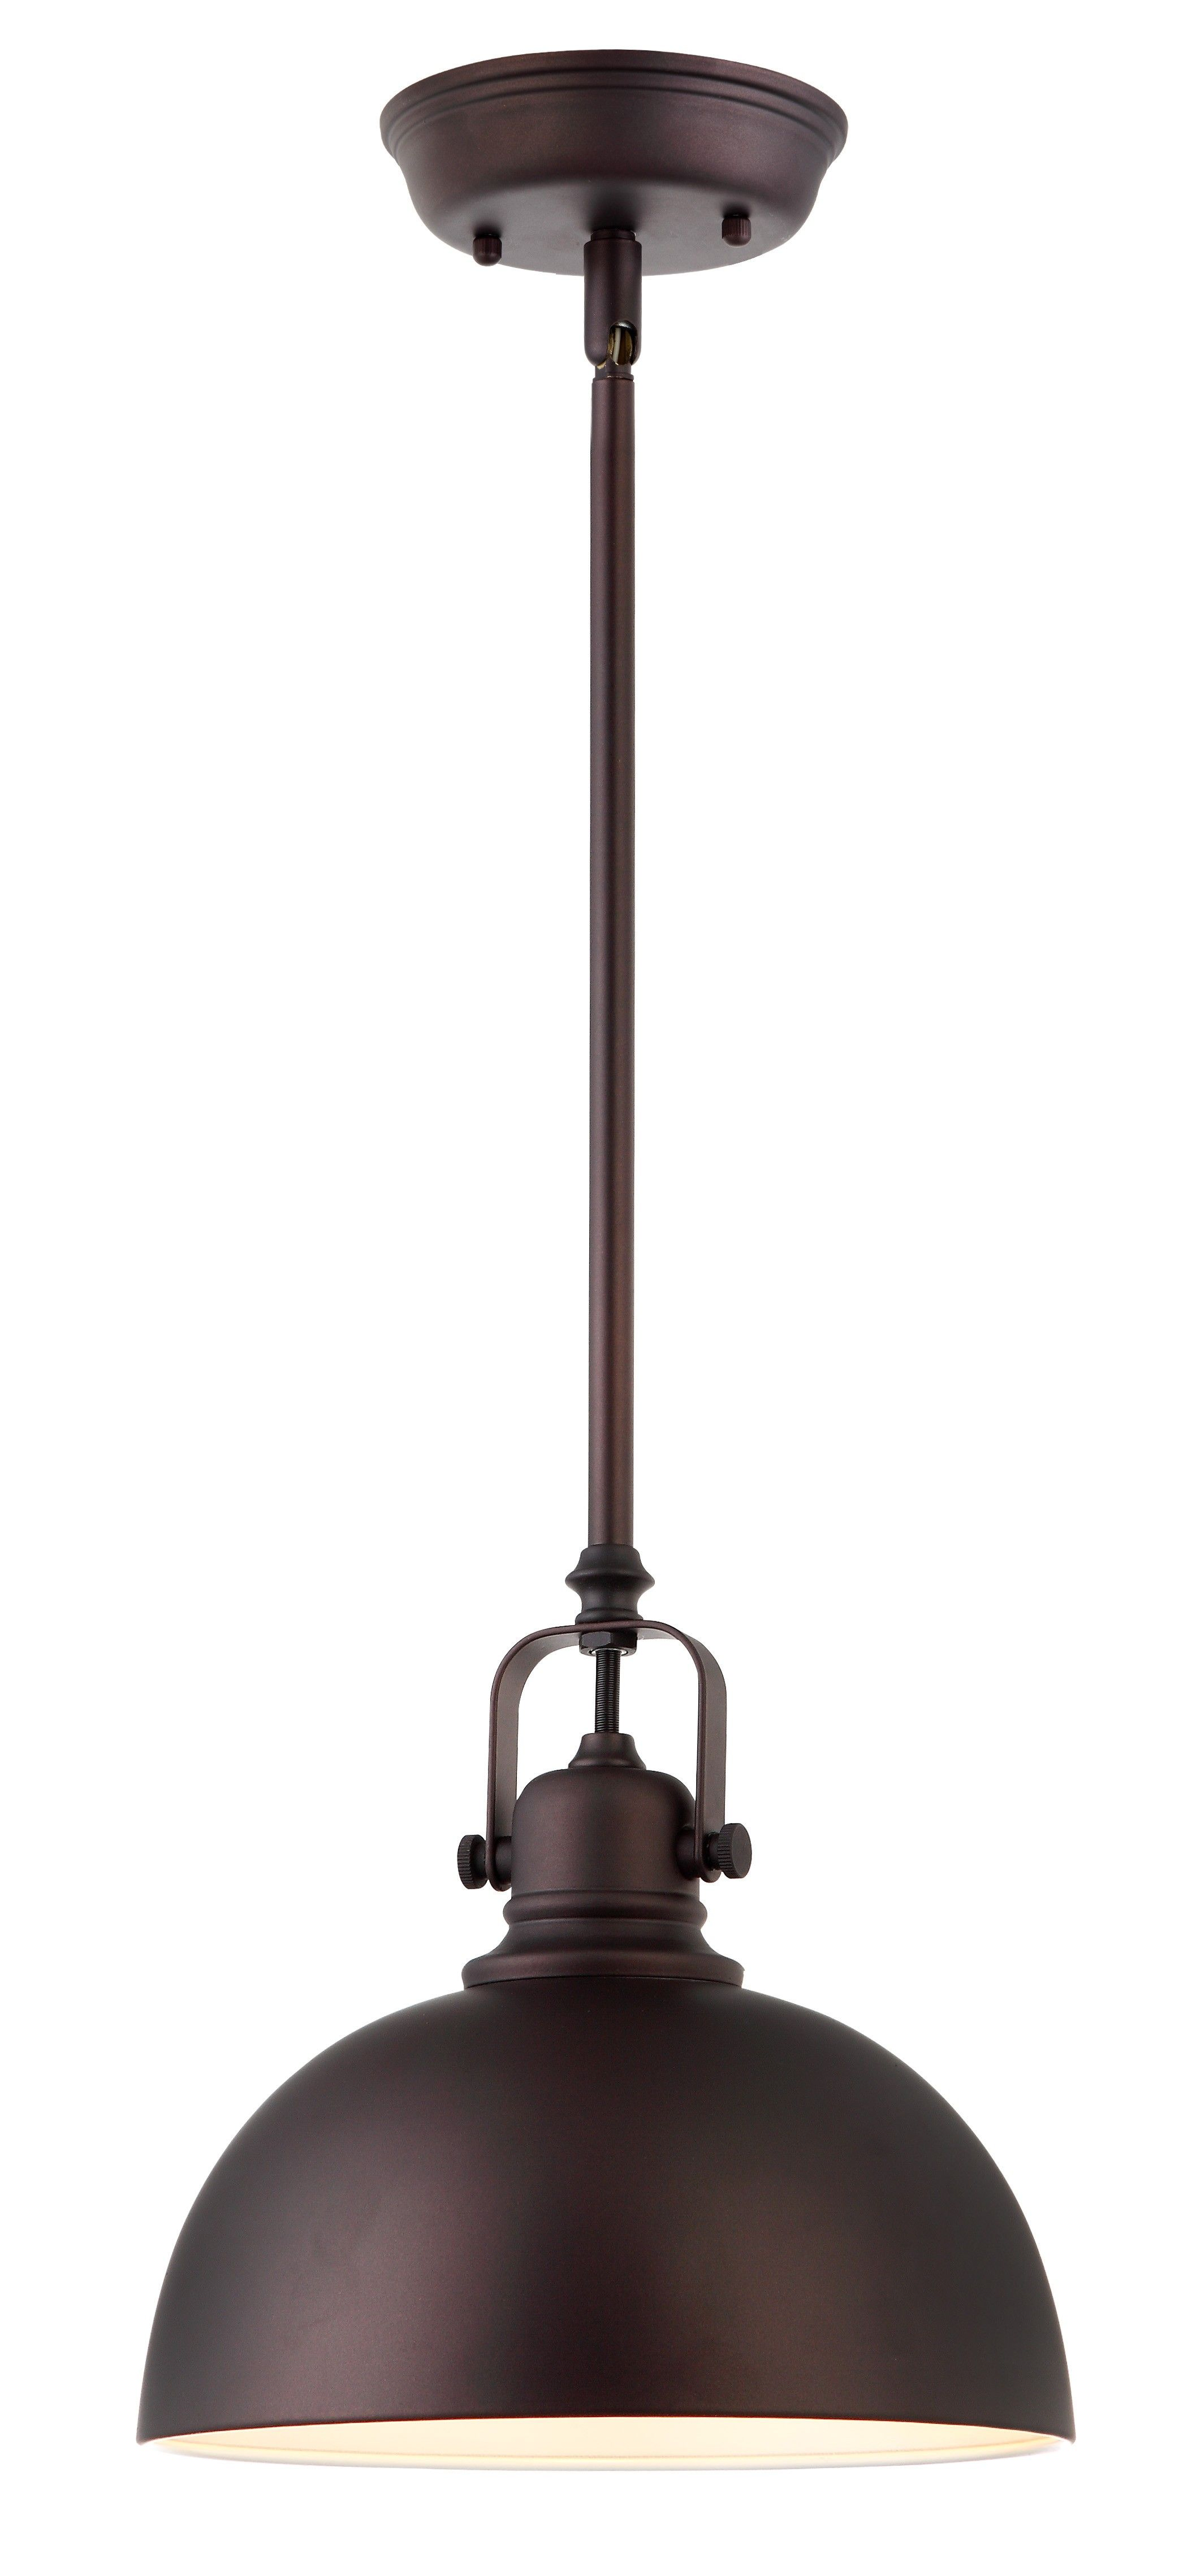 Canarm Ipl222b01orb Polo 1 Light Mini Pendant With Oil Rubbed Bronze Metal Shade